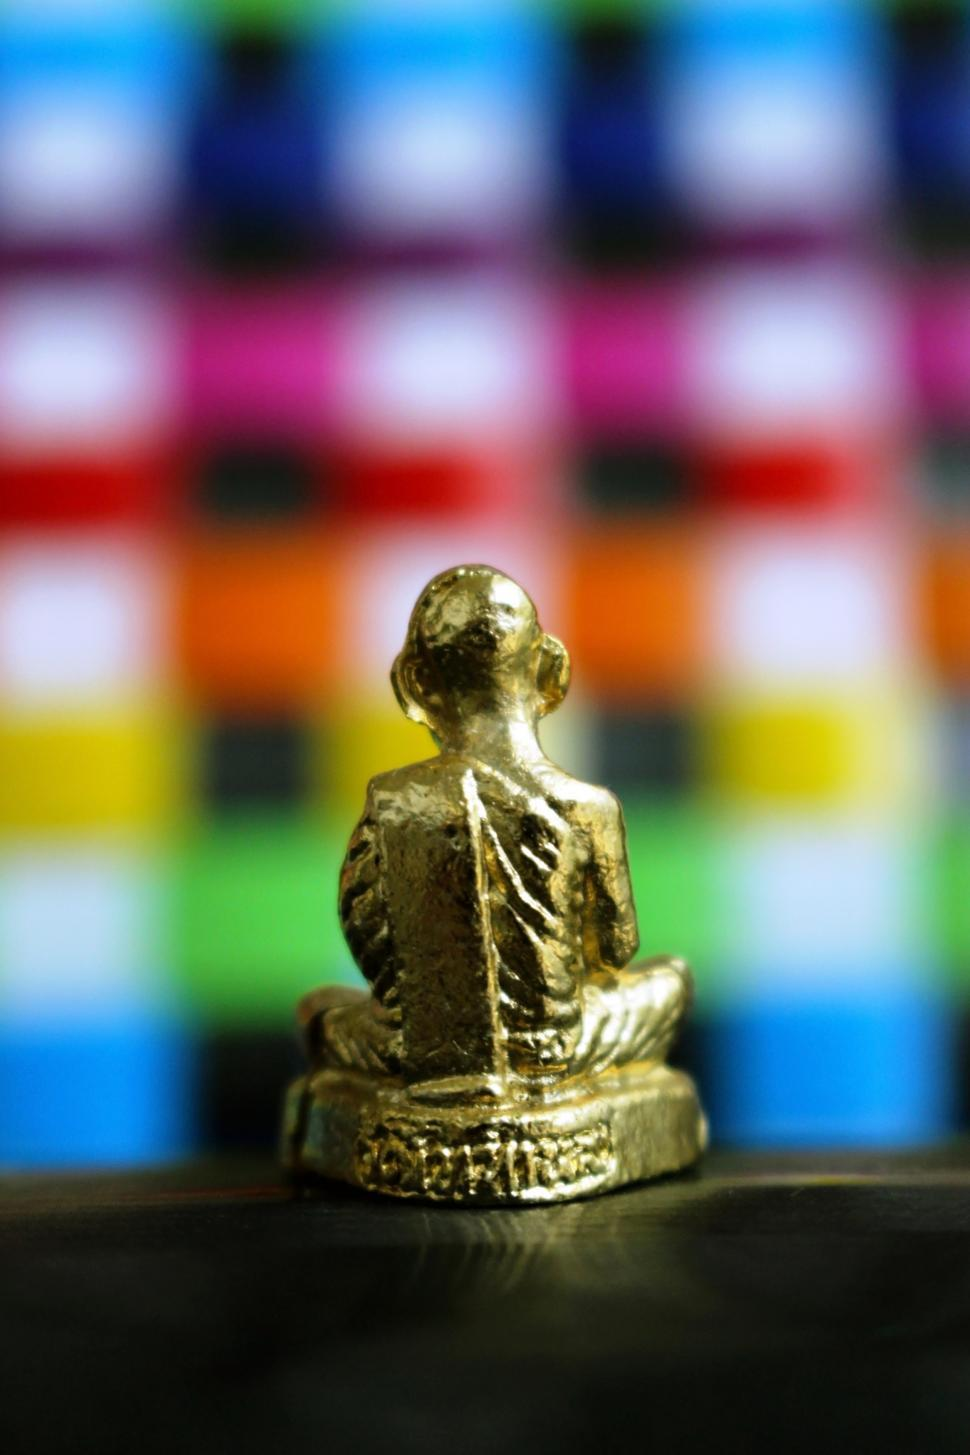 Download Free Stock HD Photo of Golden Buddha Statue  Online